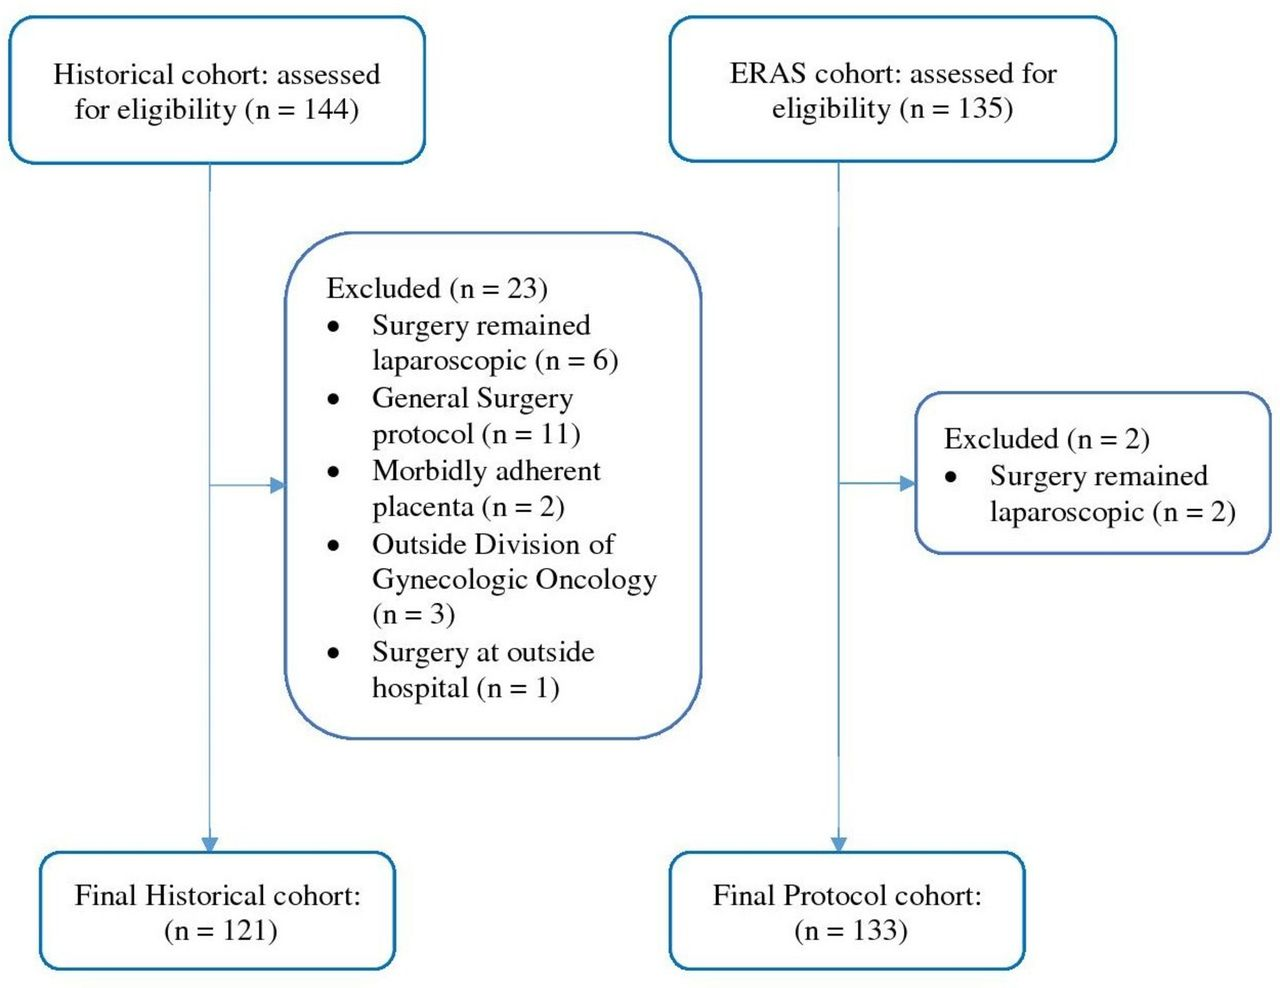 Enhanced Recovery After Surgery protocol implementation was